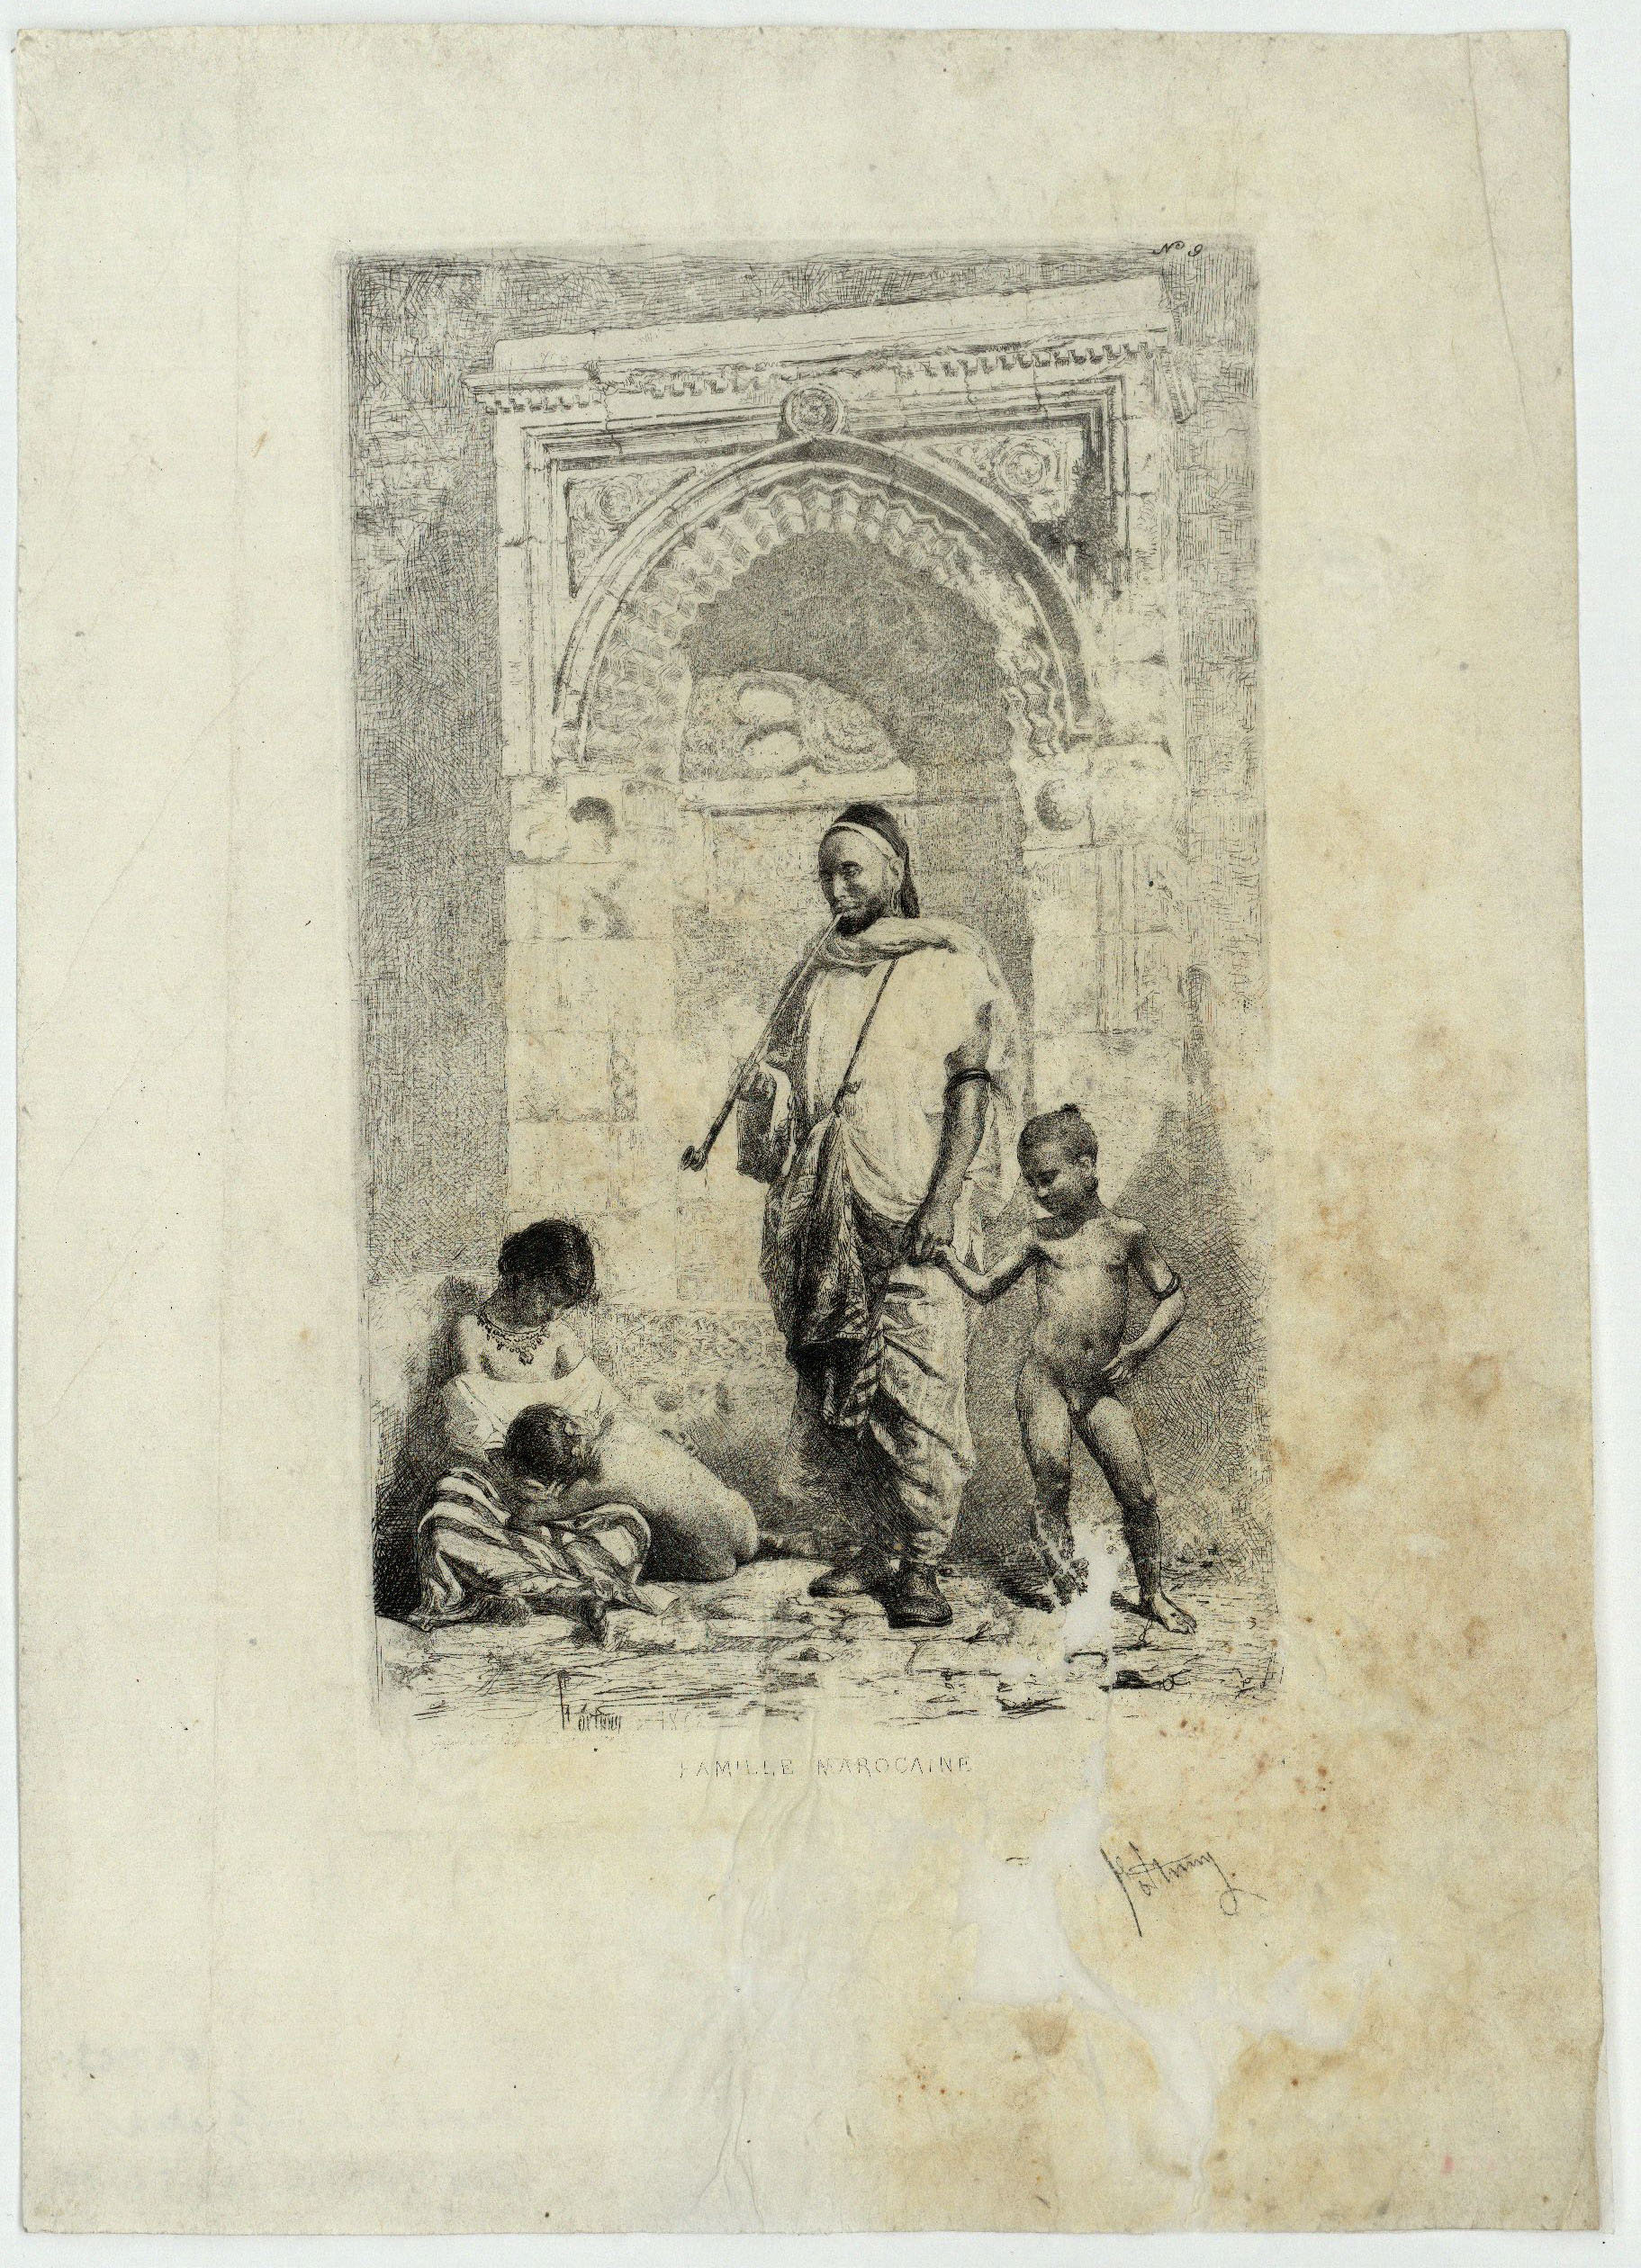 Marià Fortuny - Famille marocaine (Família marroquina) - 1862